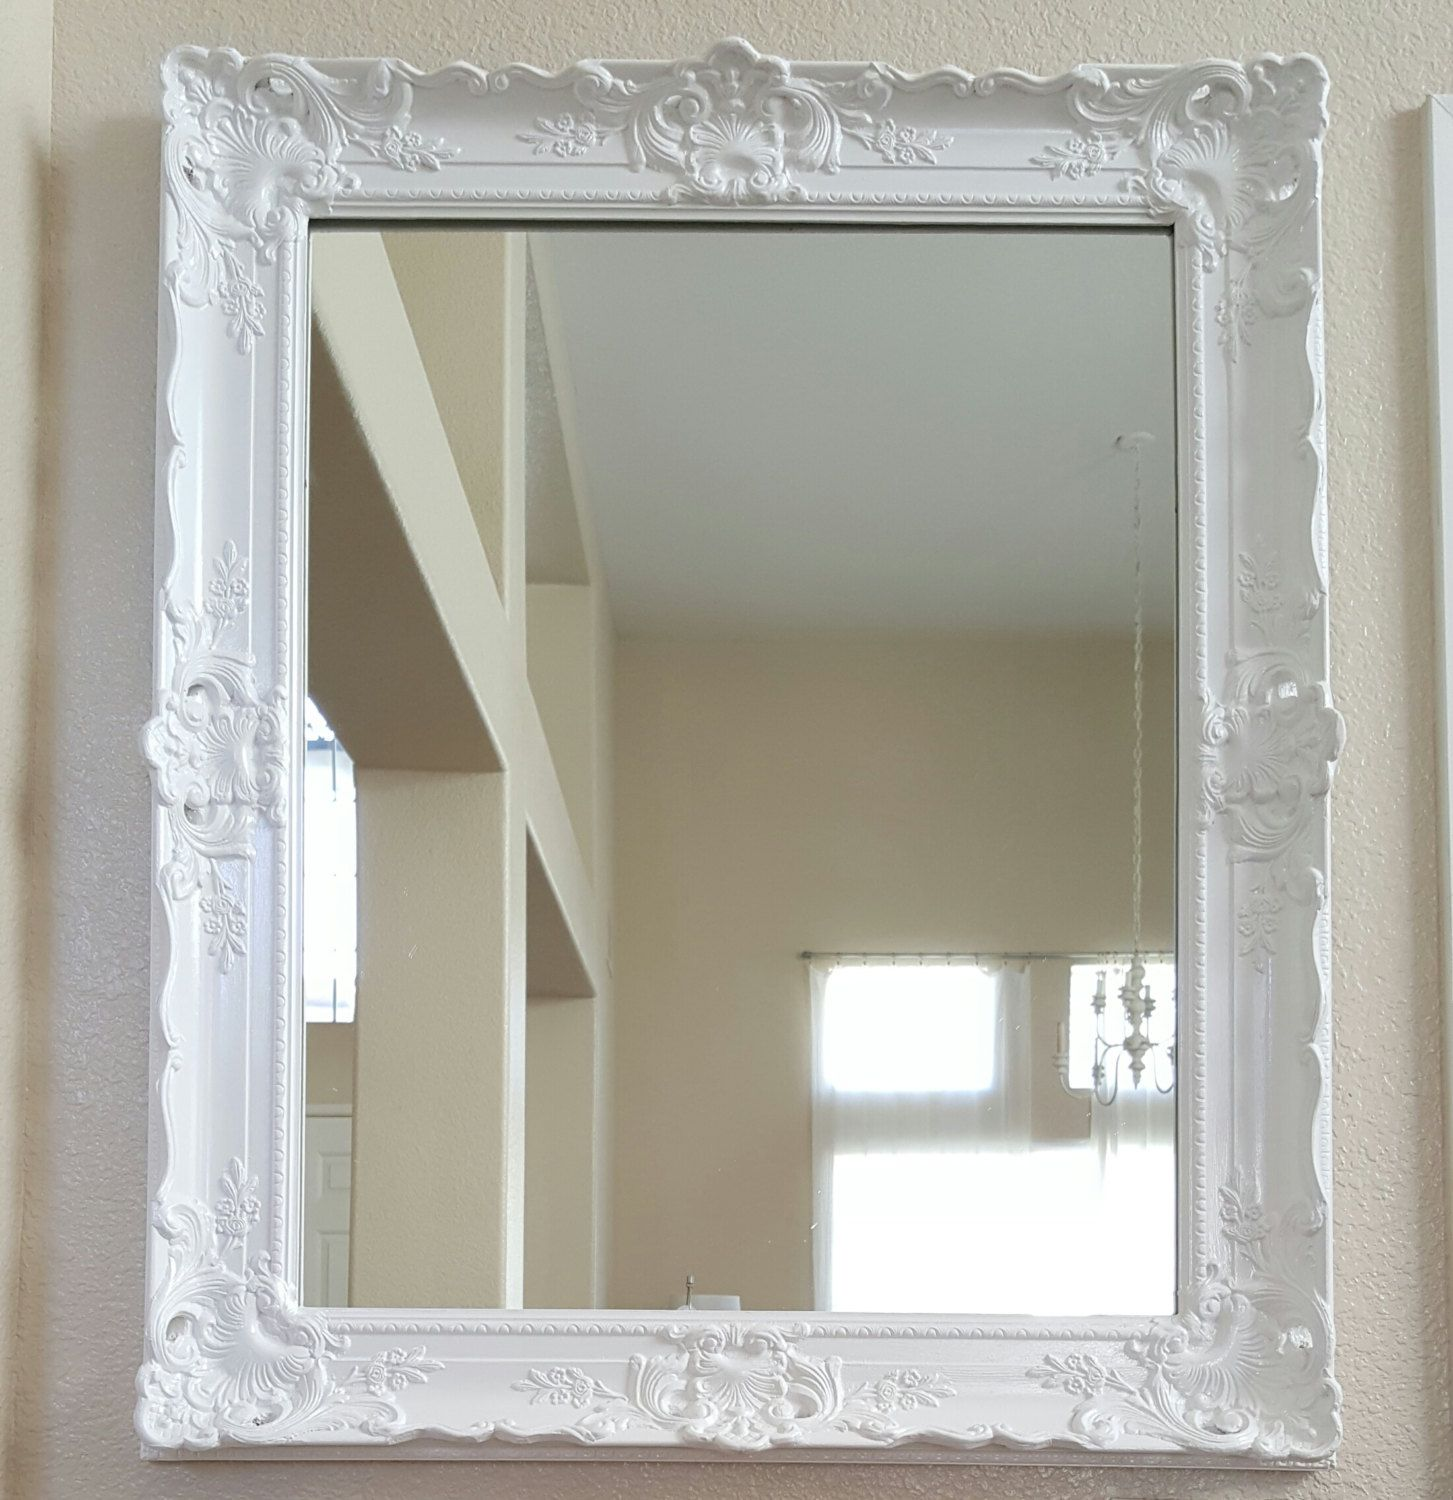 White Antique Ornate Framed Mirror By Chic Home Made In The U S A Modern Glam Ornate Wood Frames Wood Framed Mirror White Mirror Frame